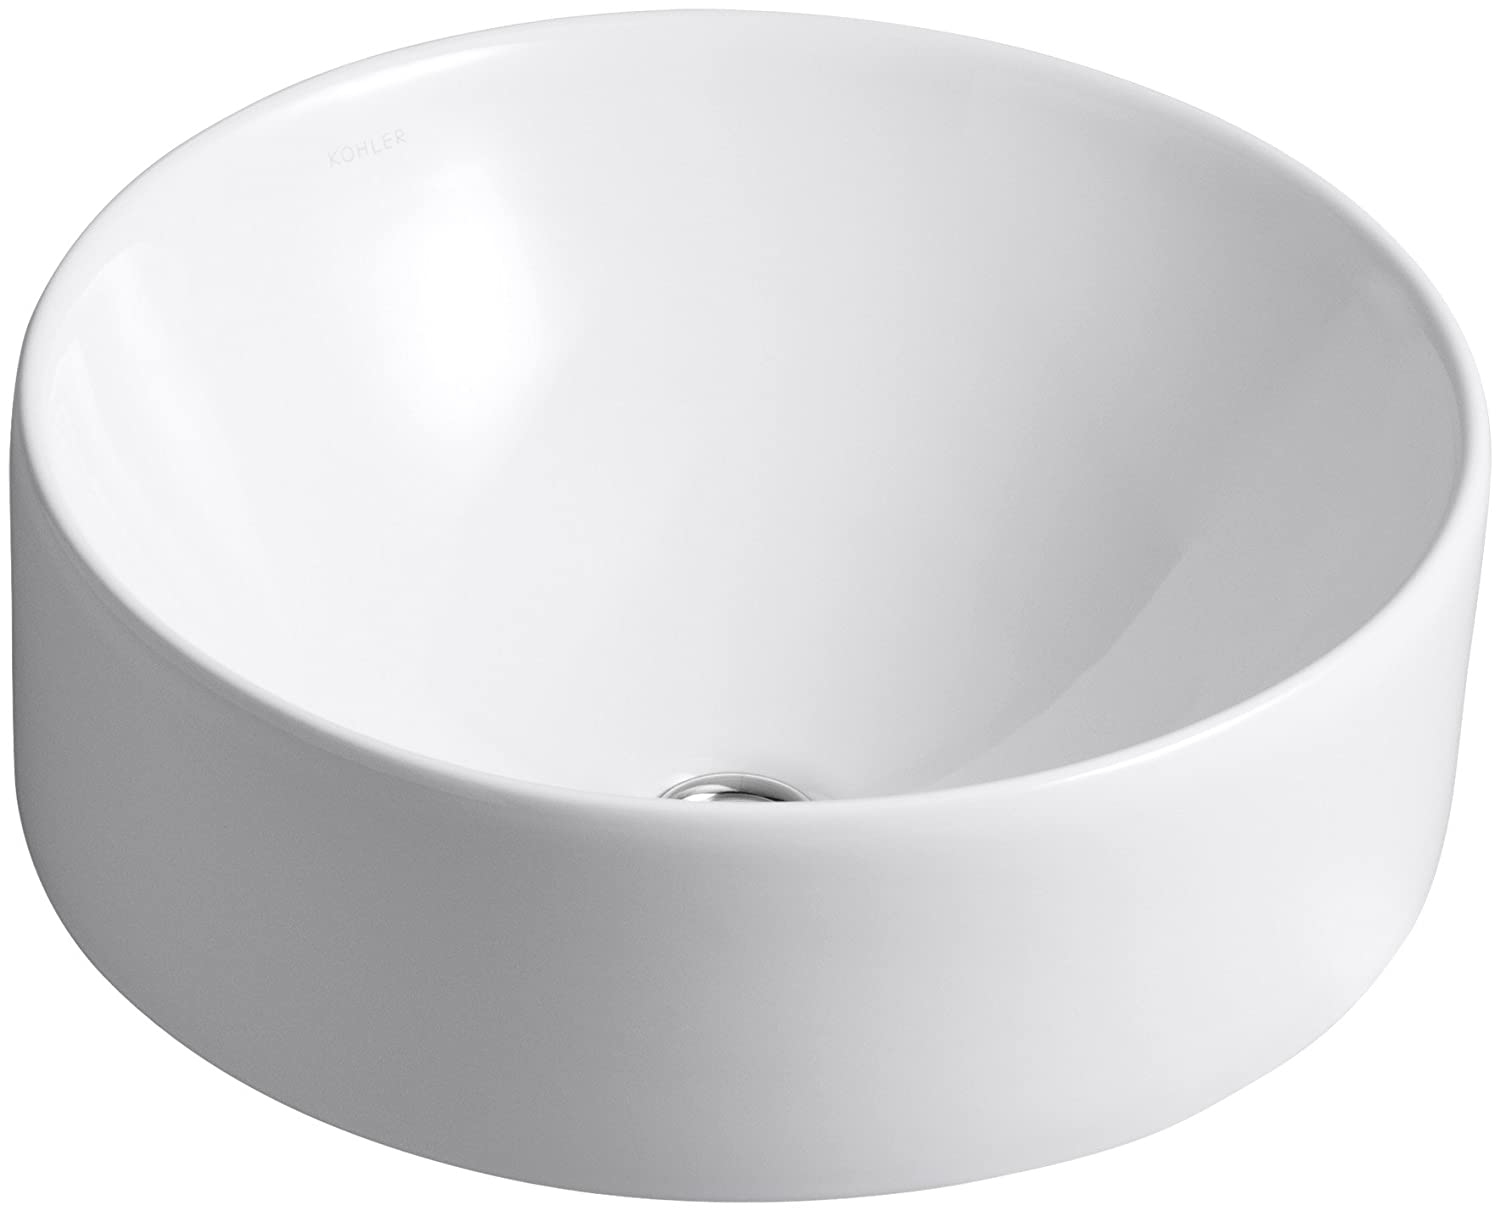 Kohler 14800-0 Vitreous china Above counter Round Bathroom Sink, 18.701 x 18.701 x 10.236 inches, White